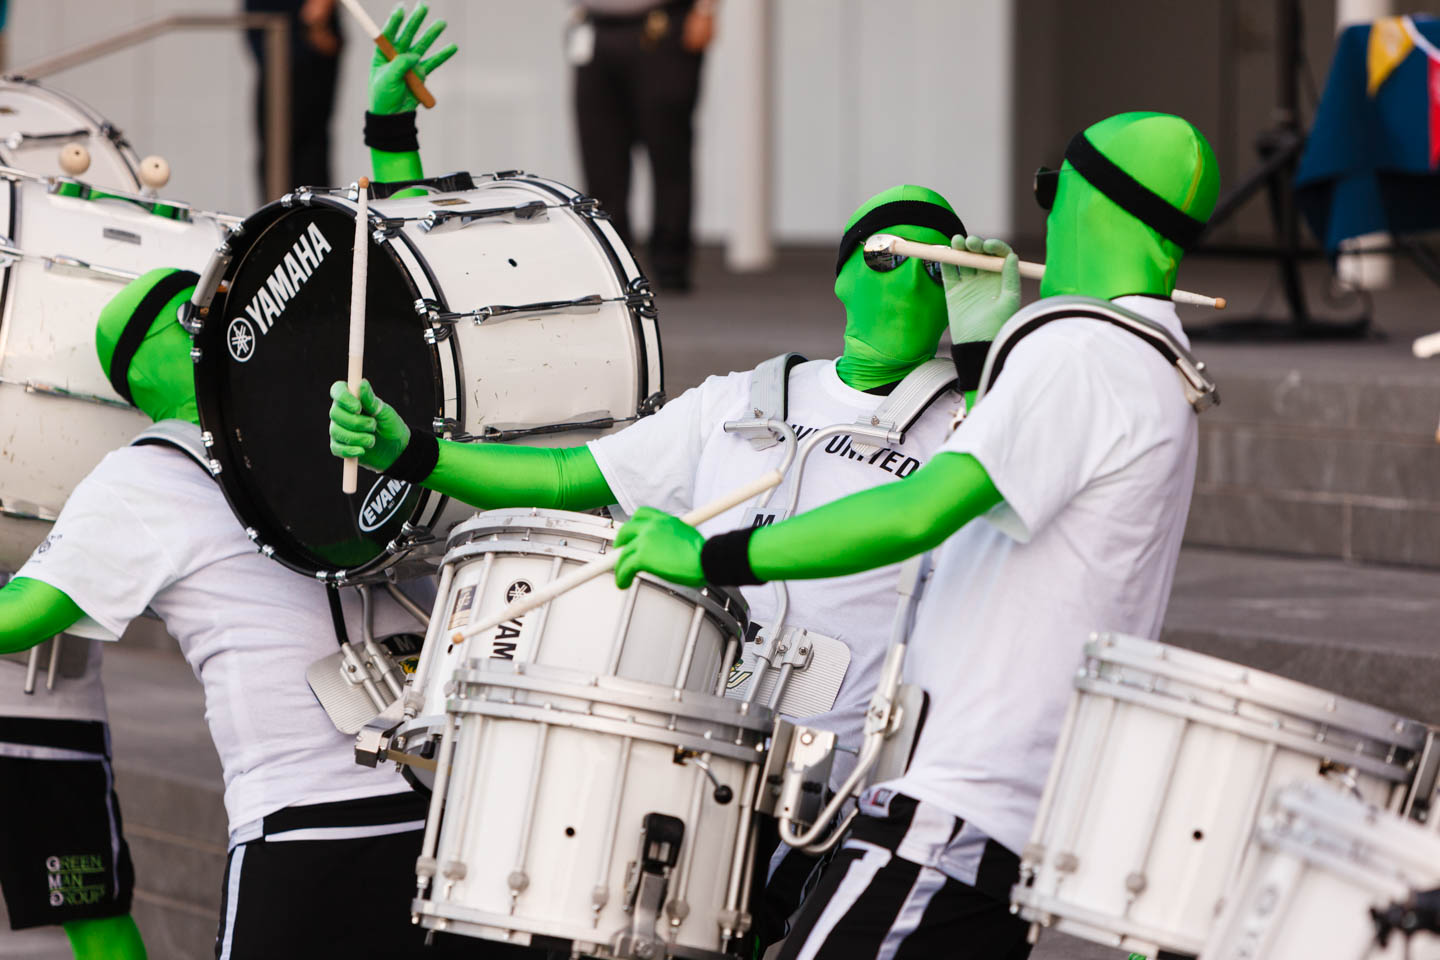 UVU Green Man Group play drums for the volunteers